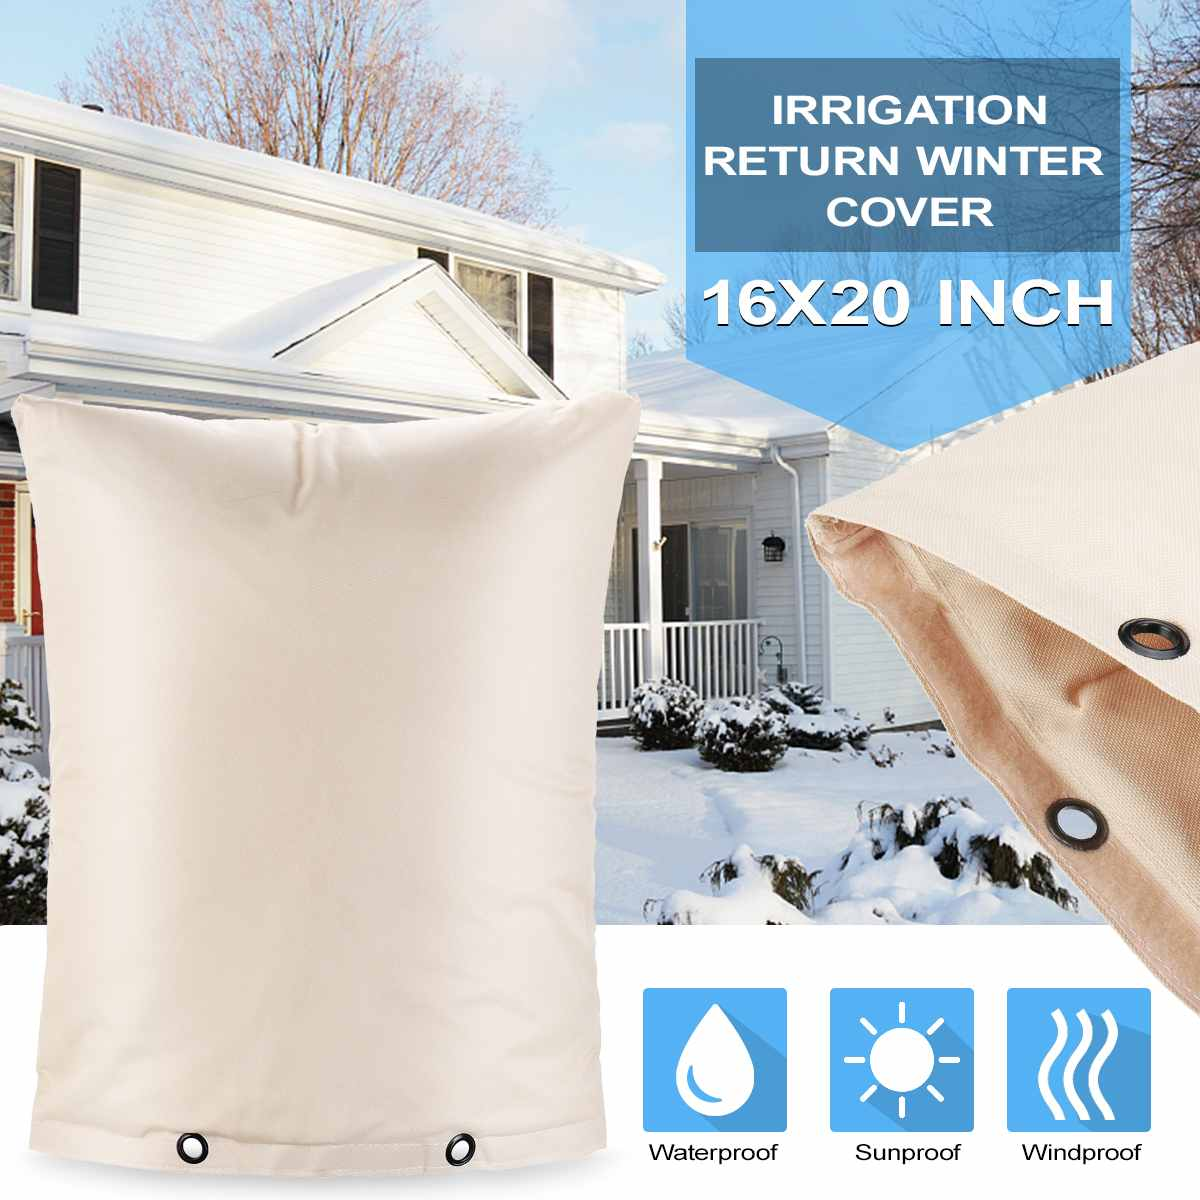 Water Sprinkler Valve Box Outdoor Backflow Preventer Insulation Cover For Winter Pipe Freeze Protection Waterproof Pouch